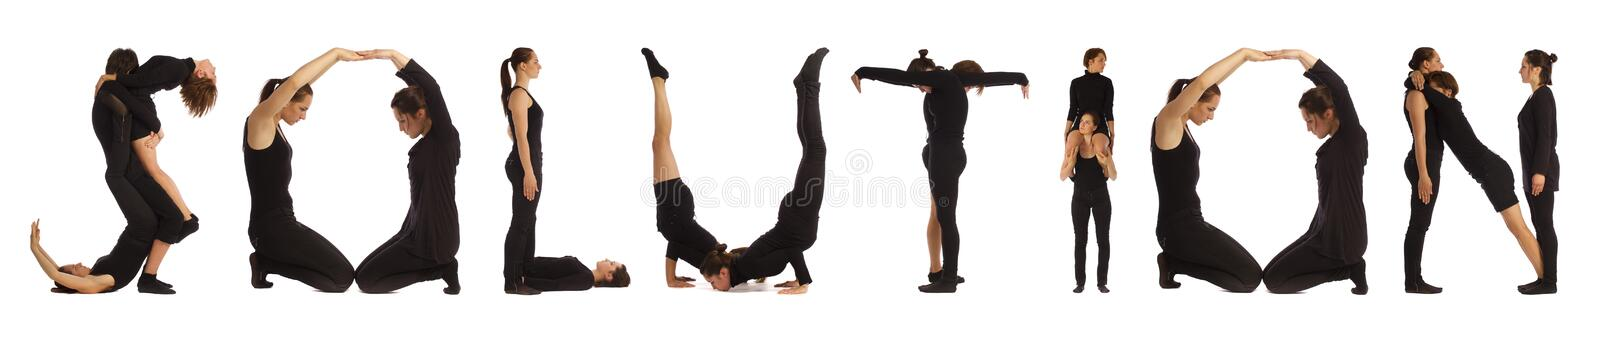 Black dressed people forming SOLUTION word. Over white background stock photos